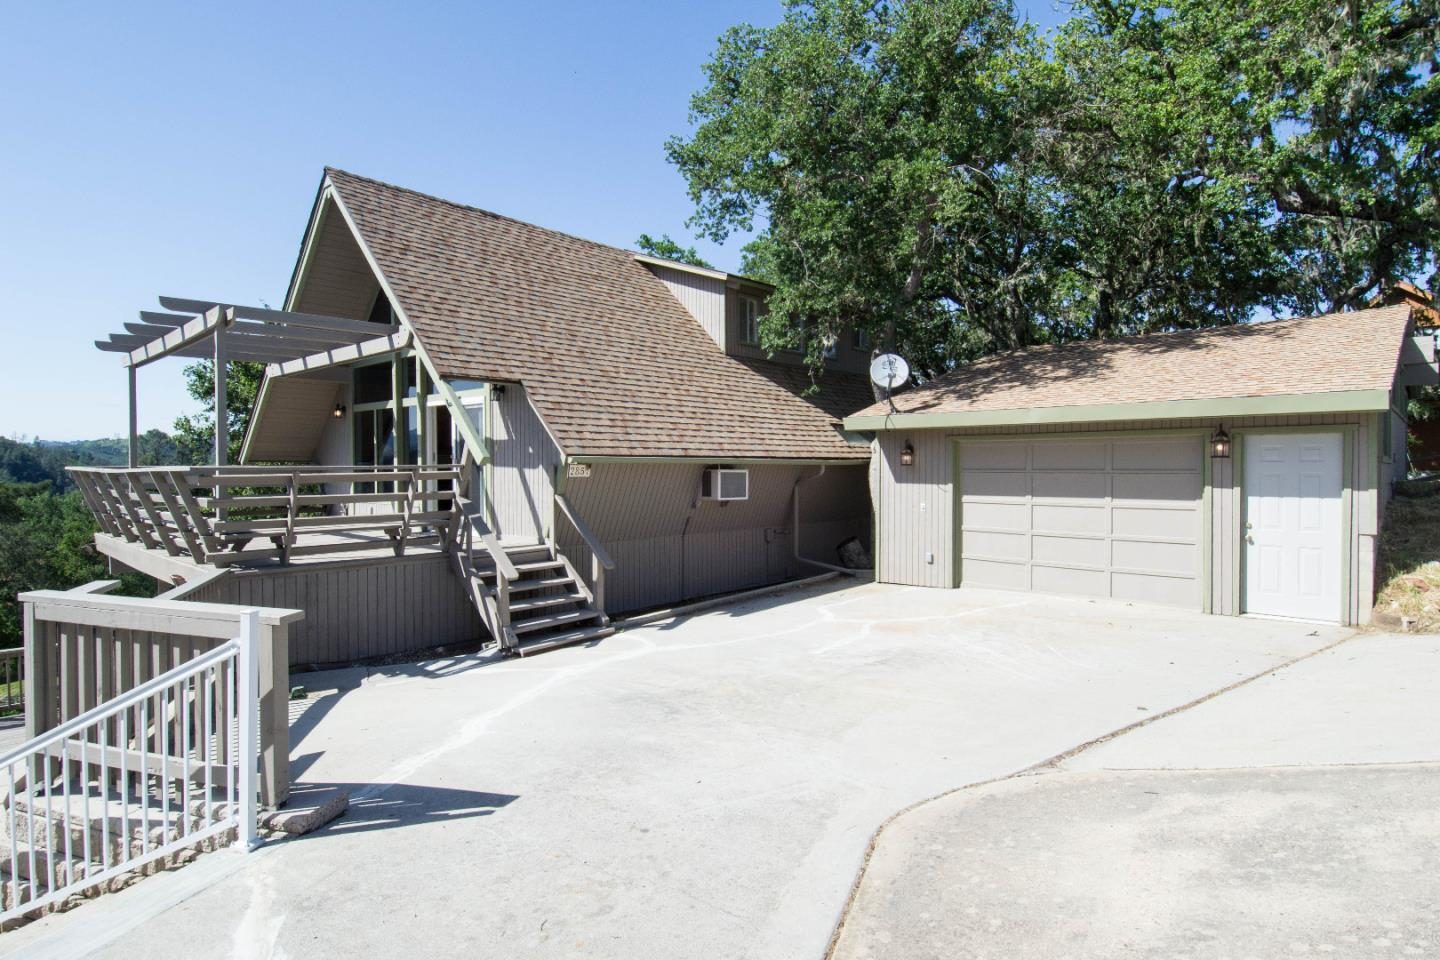 Additional photo for property listing at 2857 Spike Court  Bradley, Kalifornien 93426 Vereinigte Staaten